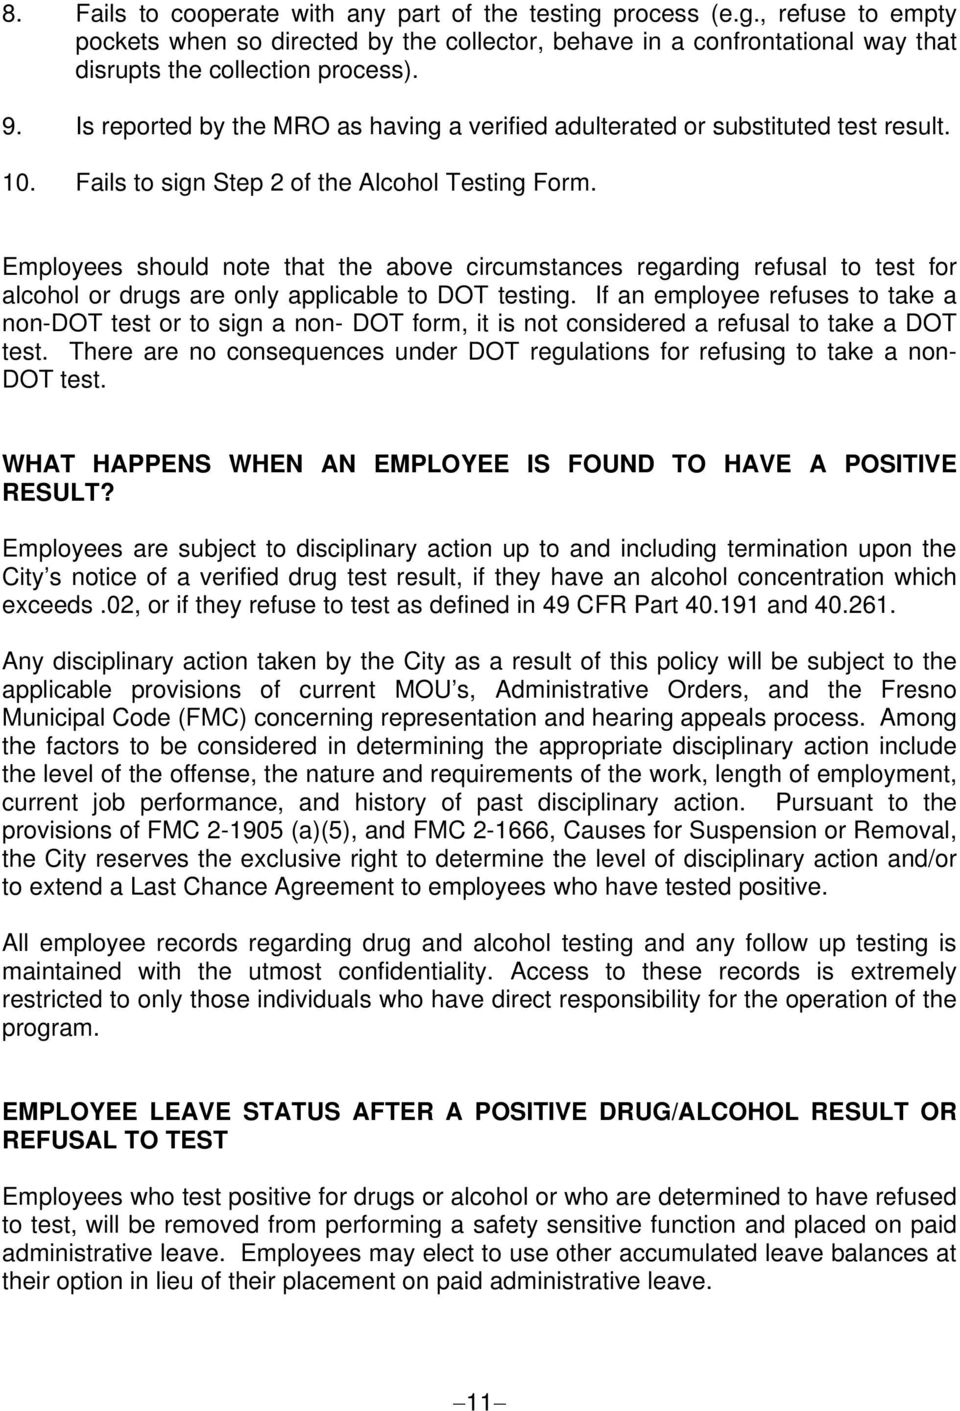 Employees should note that the above circumstances regarding refusal to test for alcohol or drugs are only applicable to DOT testing.